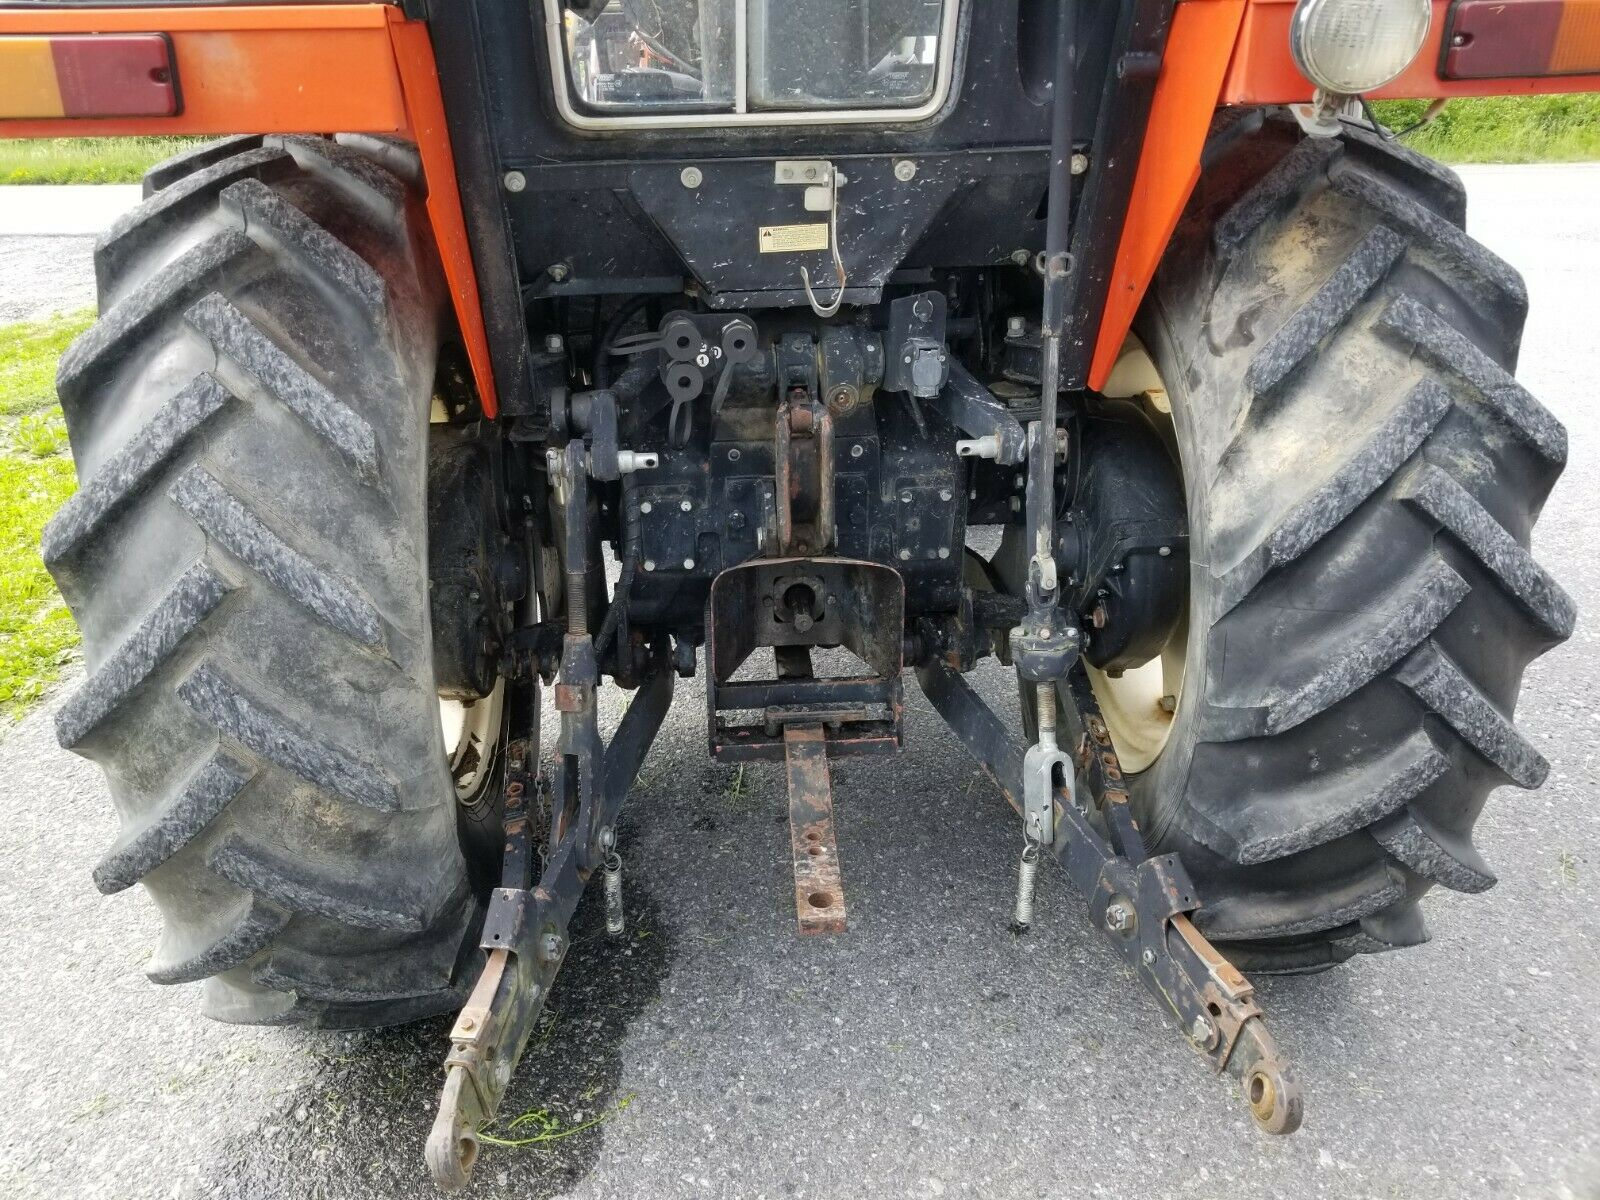 1995 Zetor 4340 tractor loader cab 59HP diesel 4×4 used farm utility